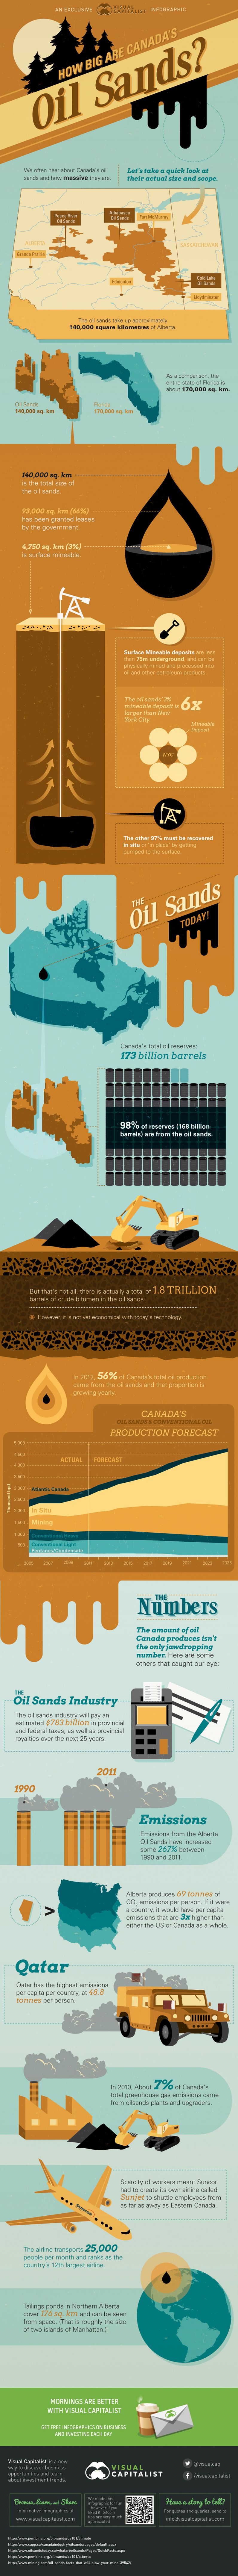 Infographic: How Big Are Canada's Oil Sands?